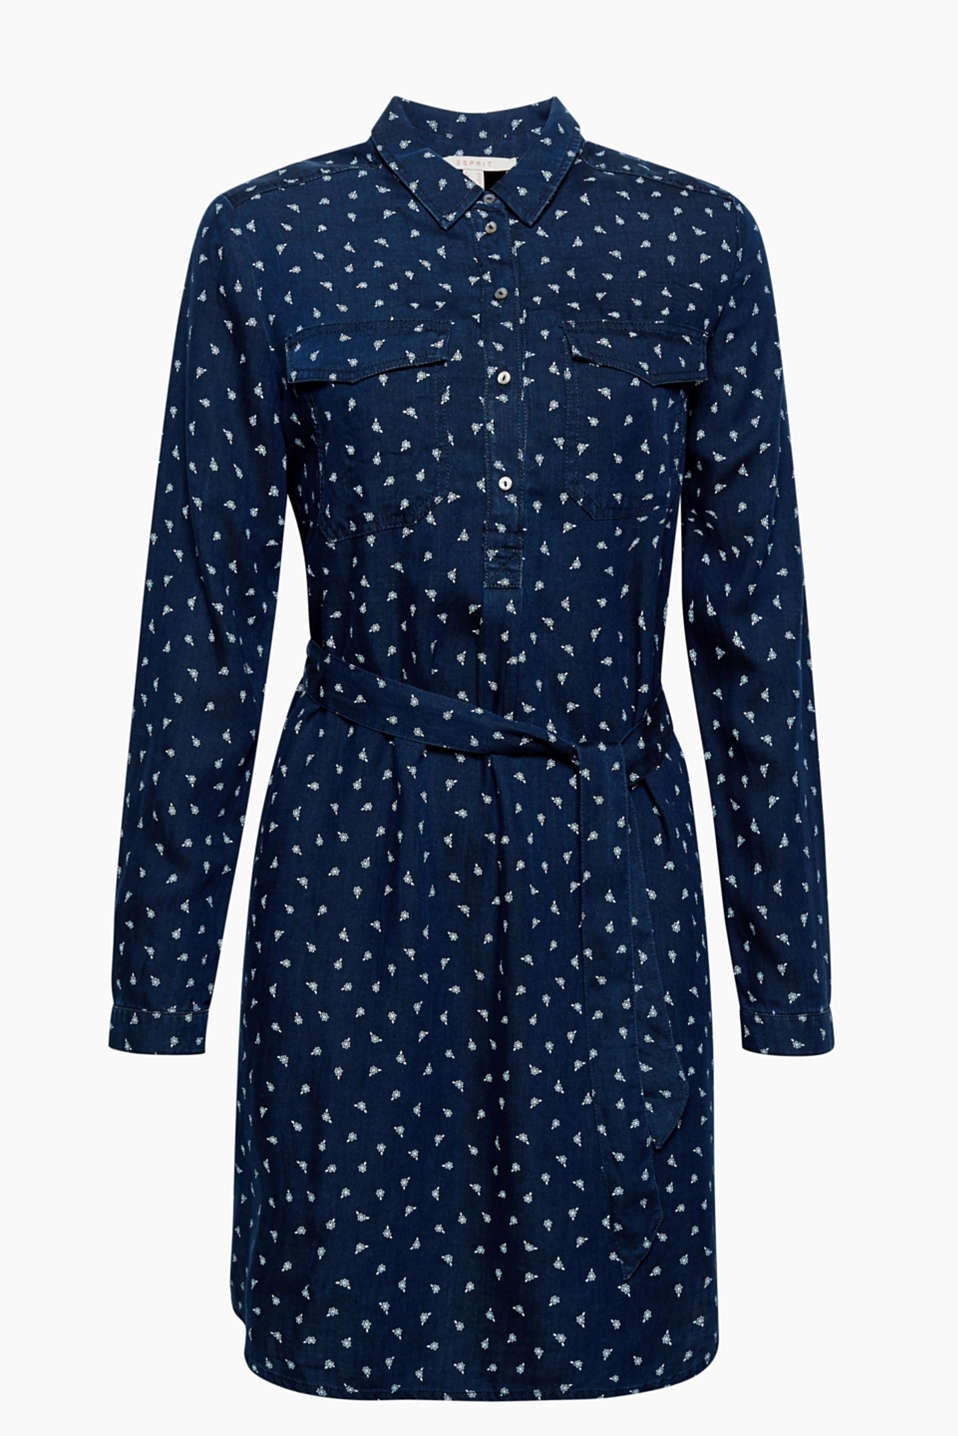 Soft, flowing and with a pretty print: this shirt blouse dress has a feminine yet casual look!